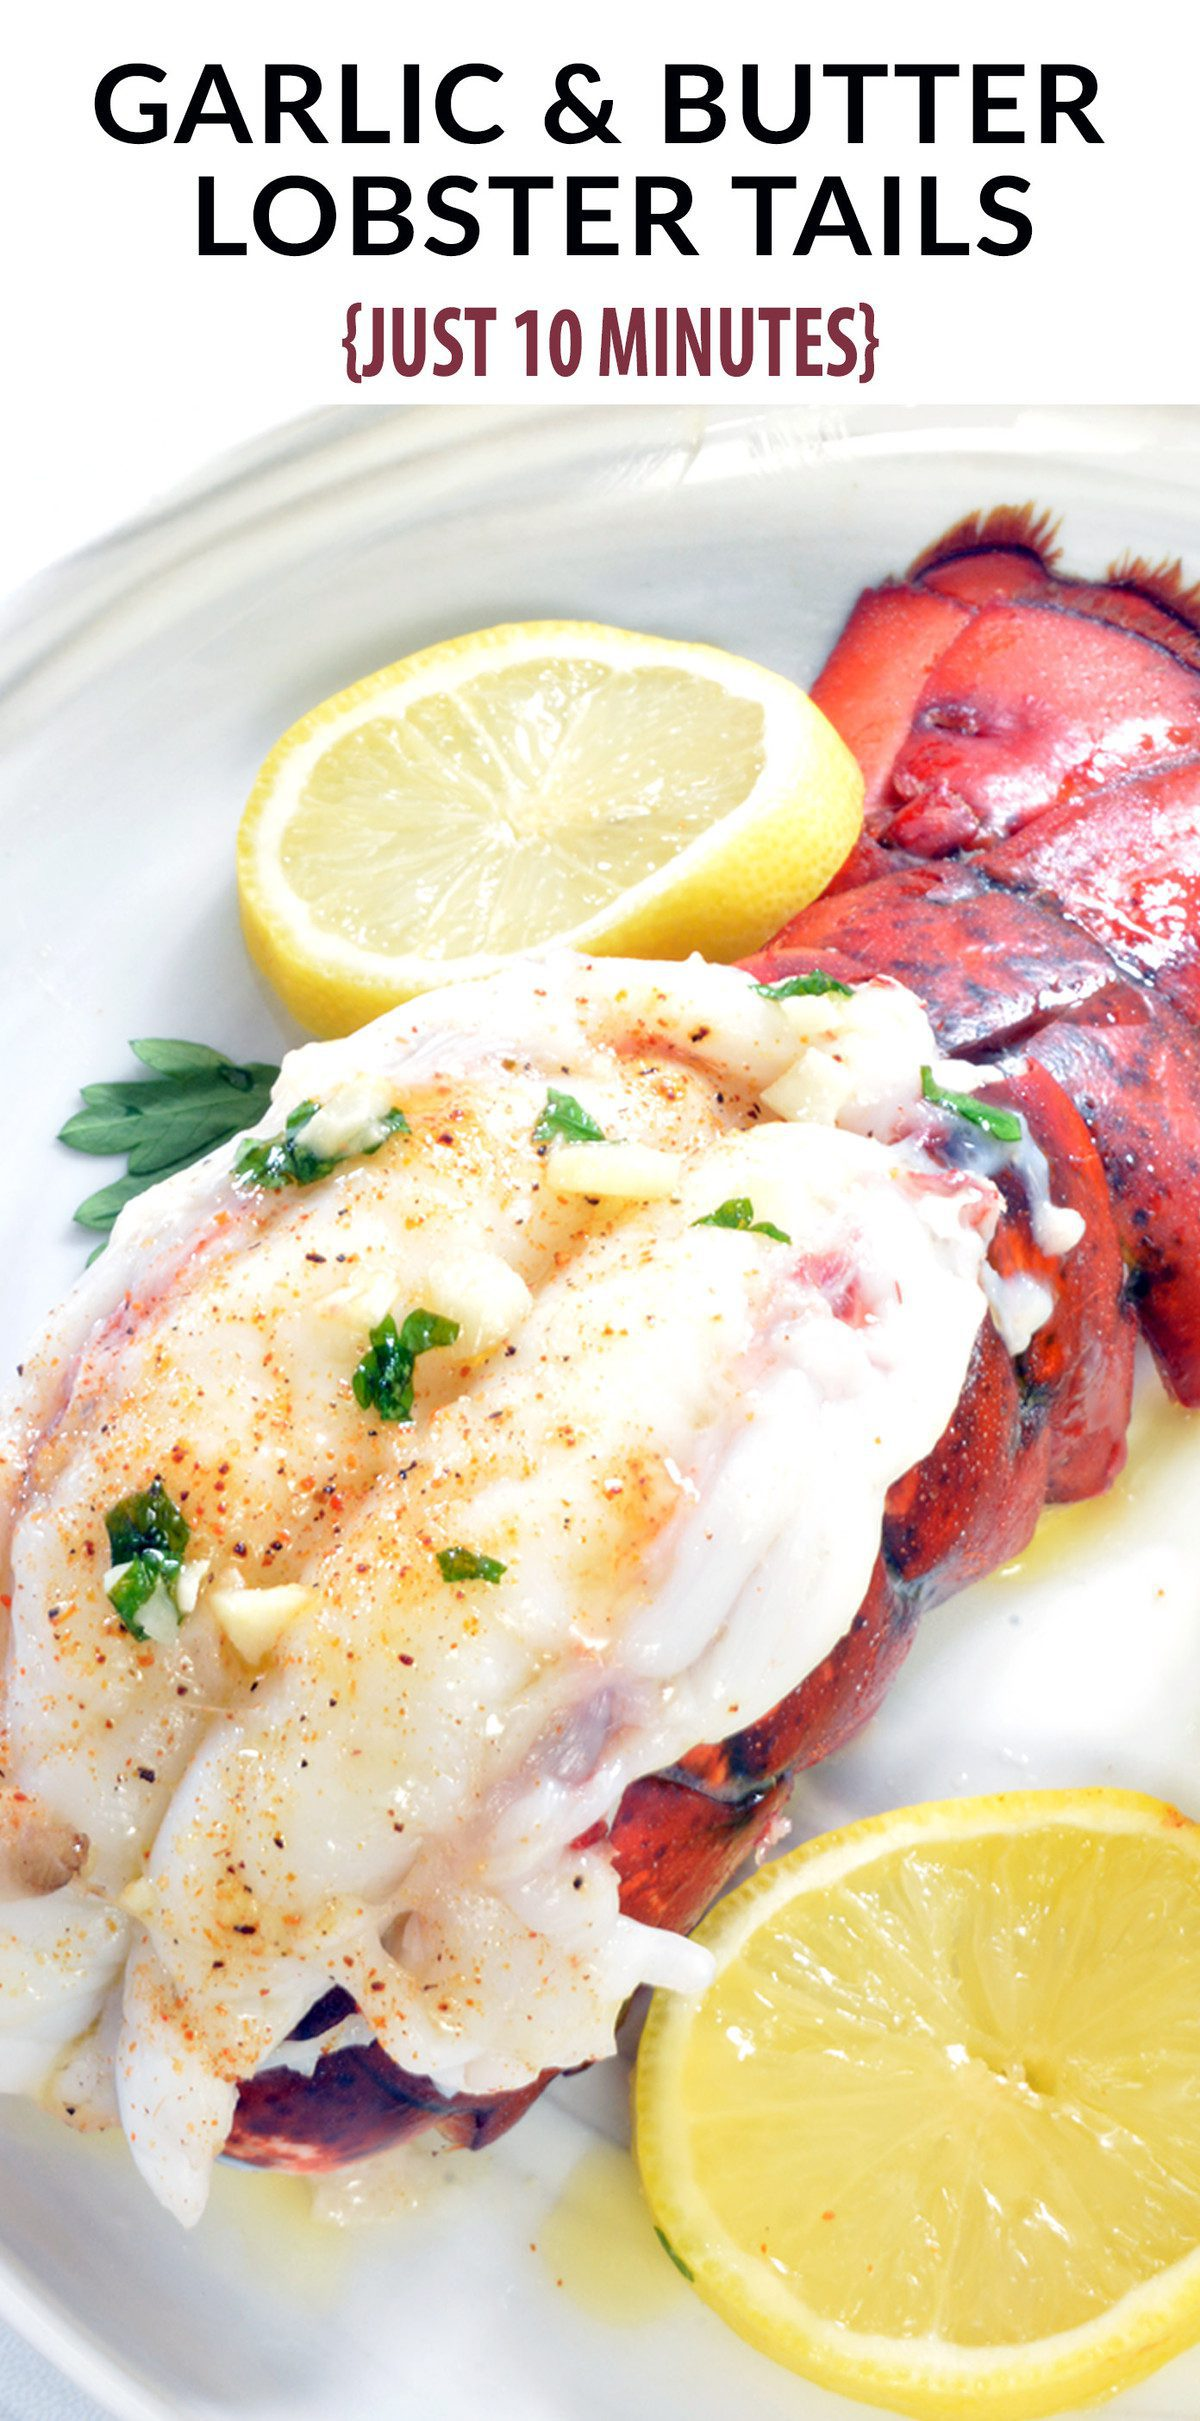 Decadent 10-Minute Garlic Butter Baked Lobster Tails Recipe! Buttery lobster drenched in a buttery garlic sauce. Perfect Valentine's Day Dinner idea at half the price. #valentinesday #valentinesdaydinner #valentinesdayrecipe #lobster #lobsterrecipes #garlicbutterrecipes #holidayrecipes #10minuterecipes #10minutedinner #fancydinnerrecipes